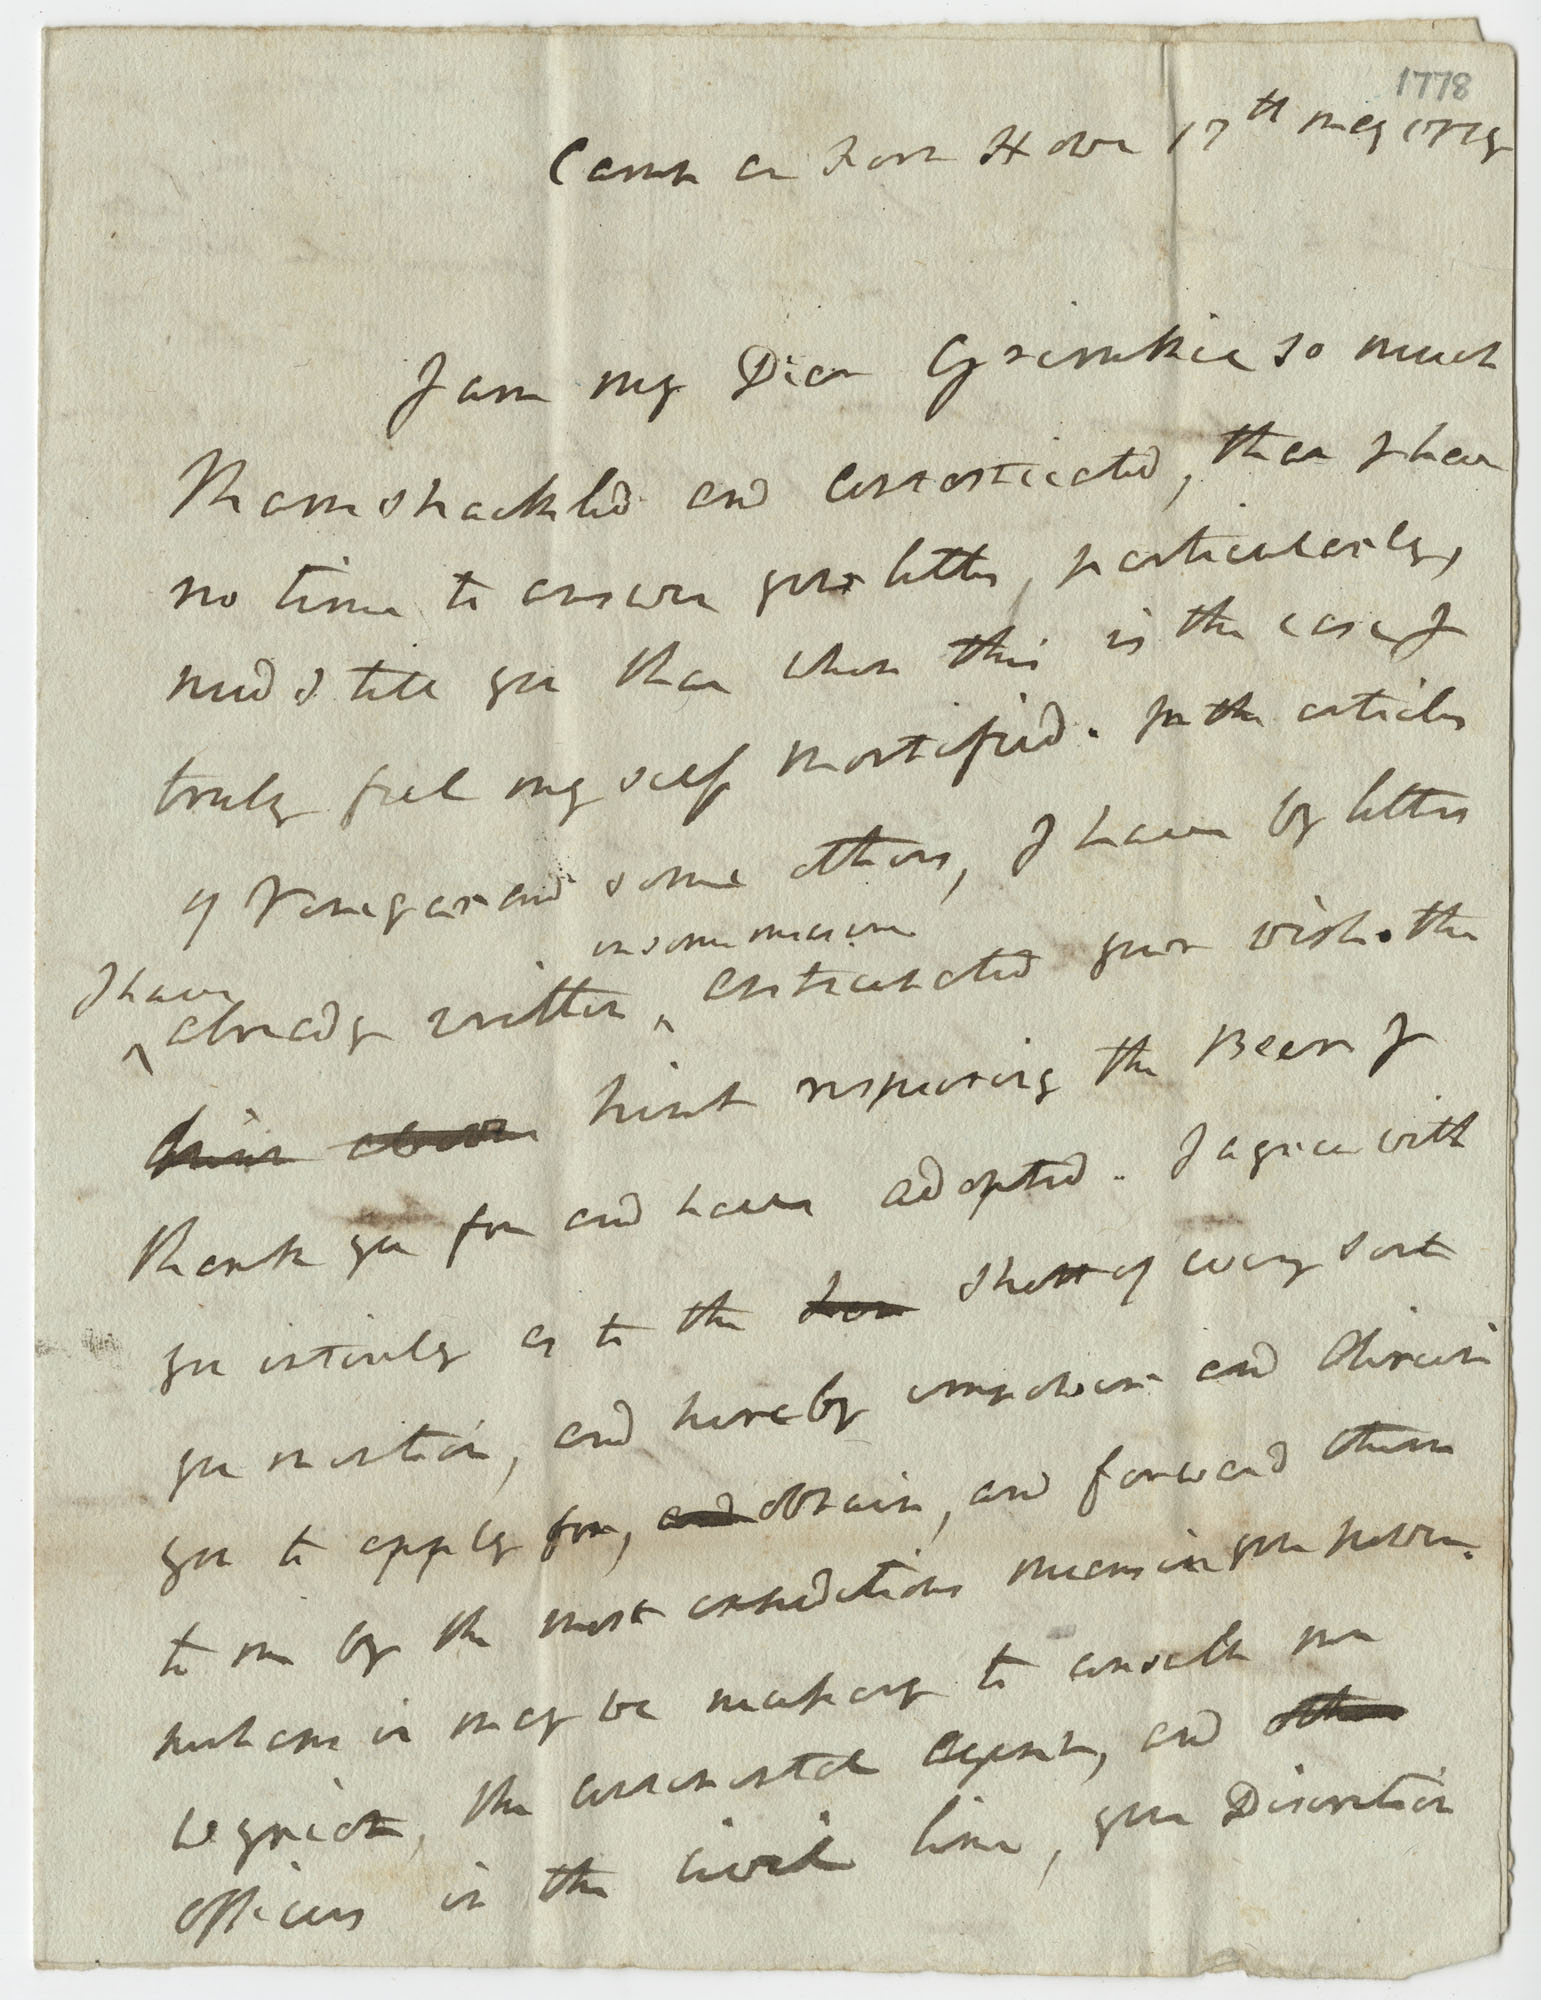 Letter from General Robert Howe to John F. Grimke, May 17, 1778